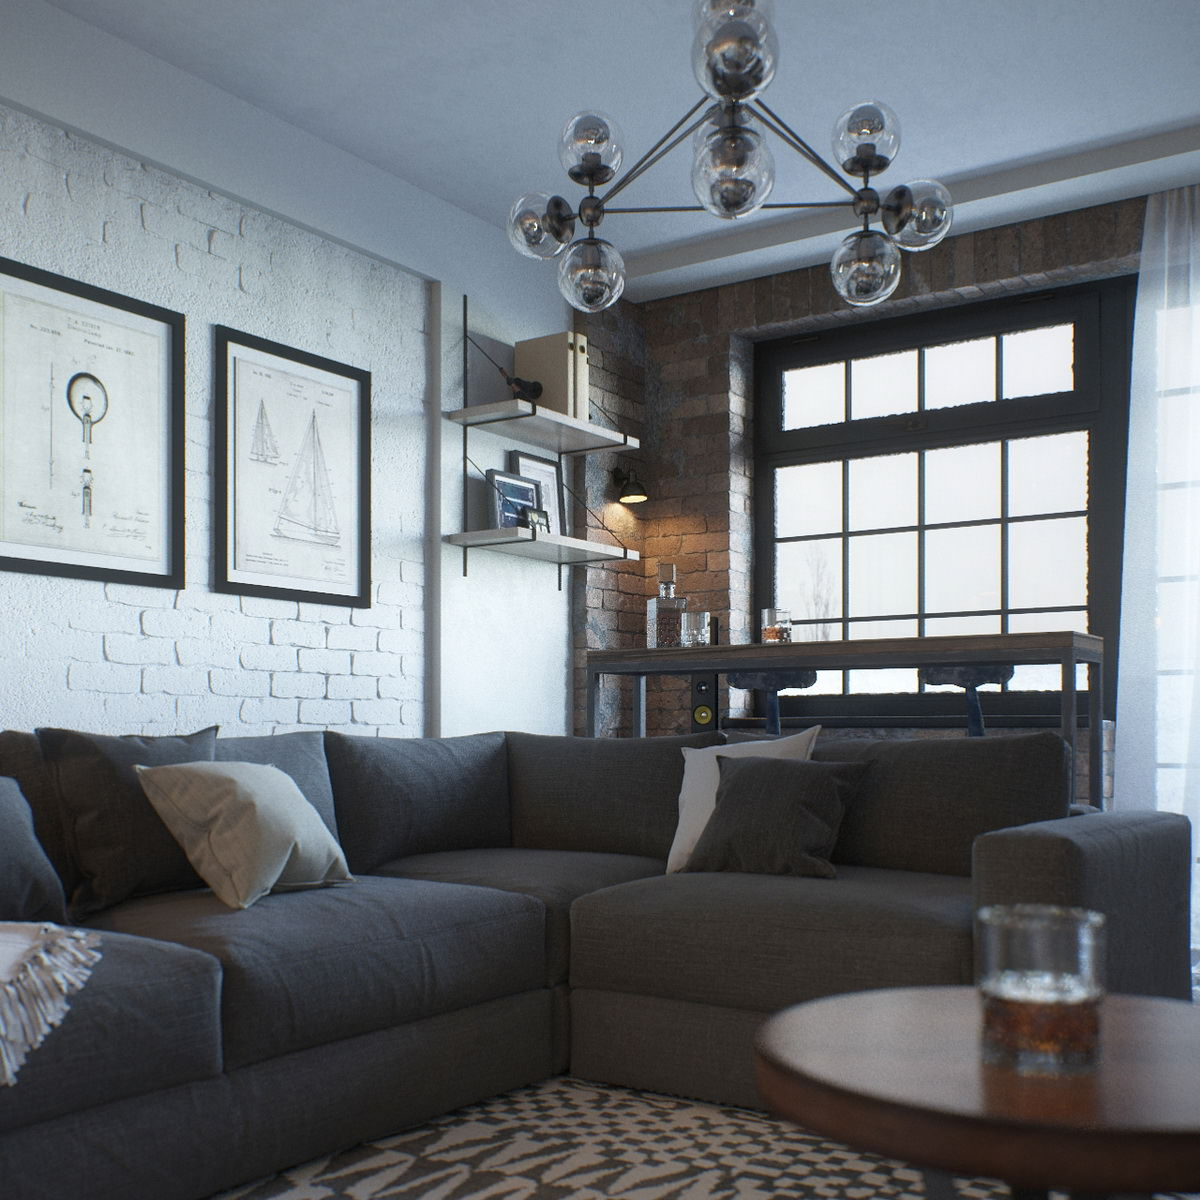 3D visualization of interiors with furniture, loft-style light fixtures, and drawings on the walls